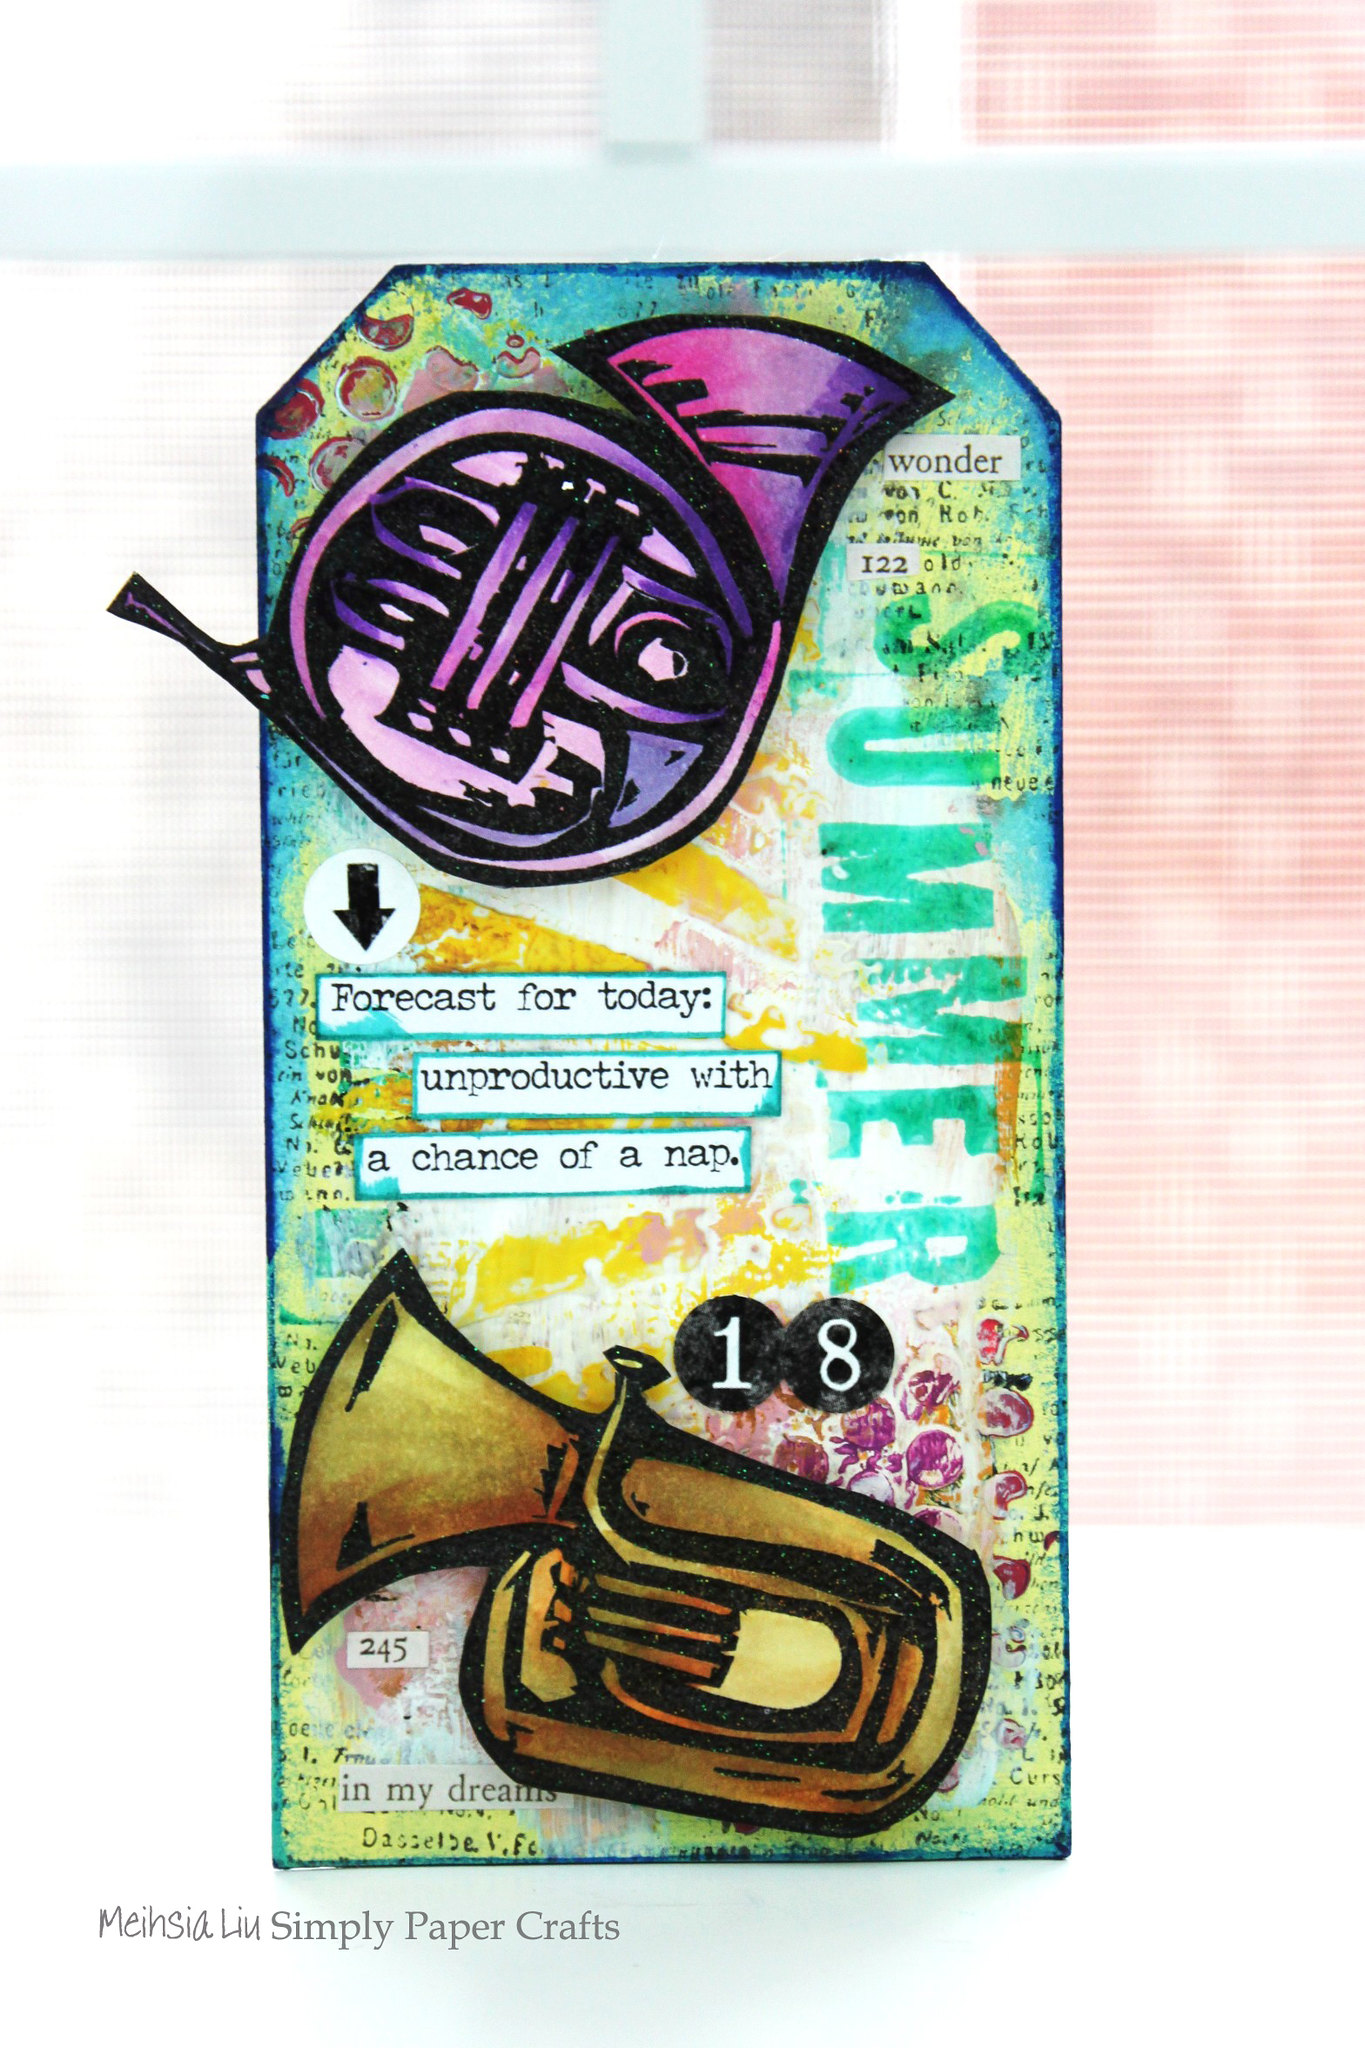 Meihsia Liu Simply Paper Crafts Mixed Media Tag Summer Fun Music Instrument Simon Says Stamp Tim Holtz